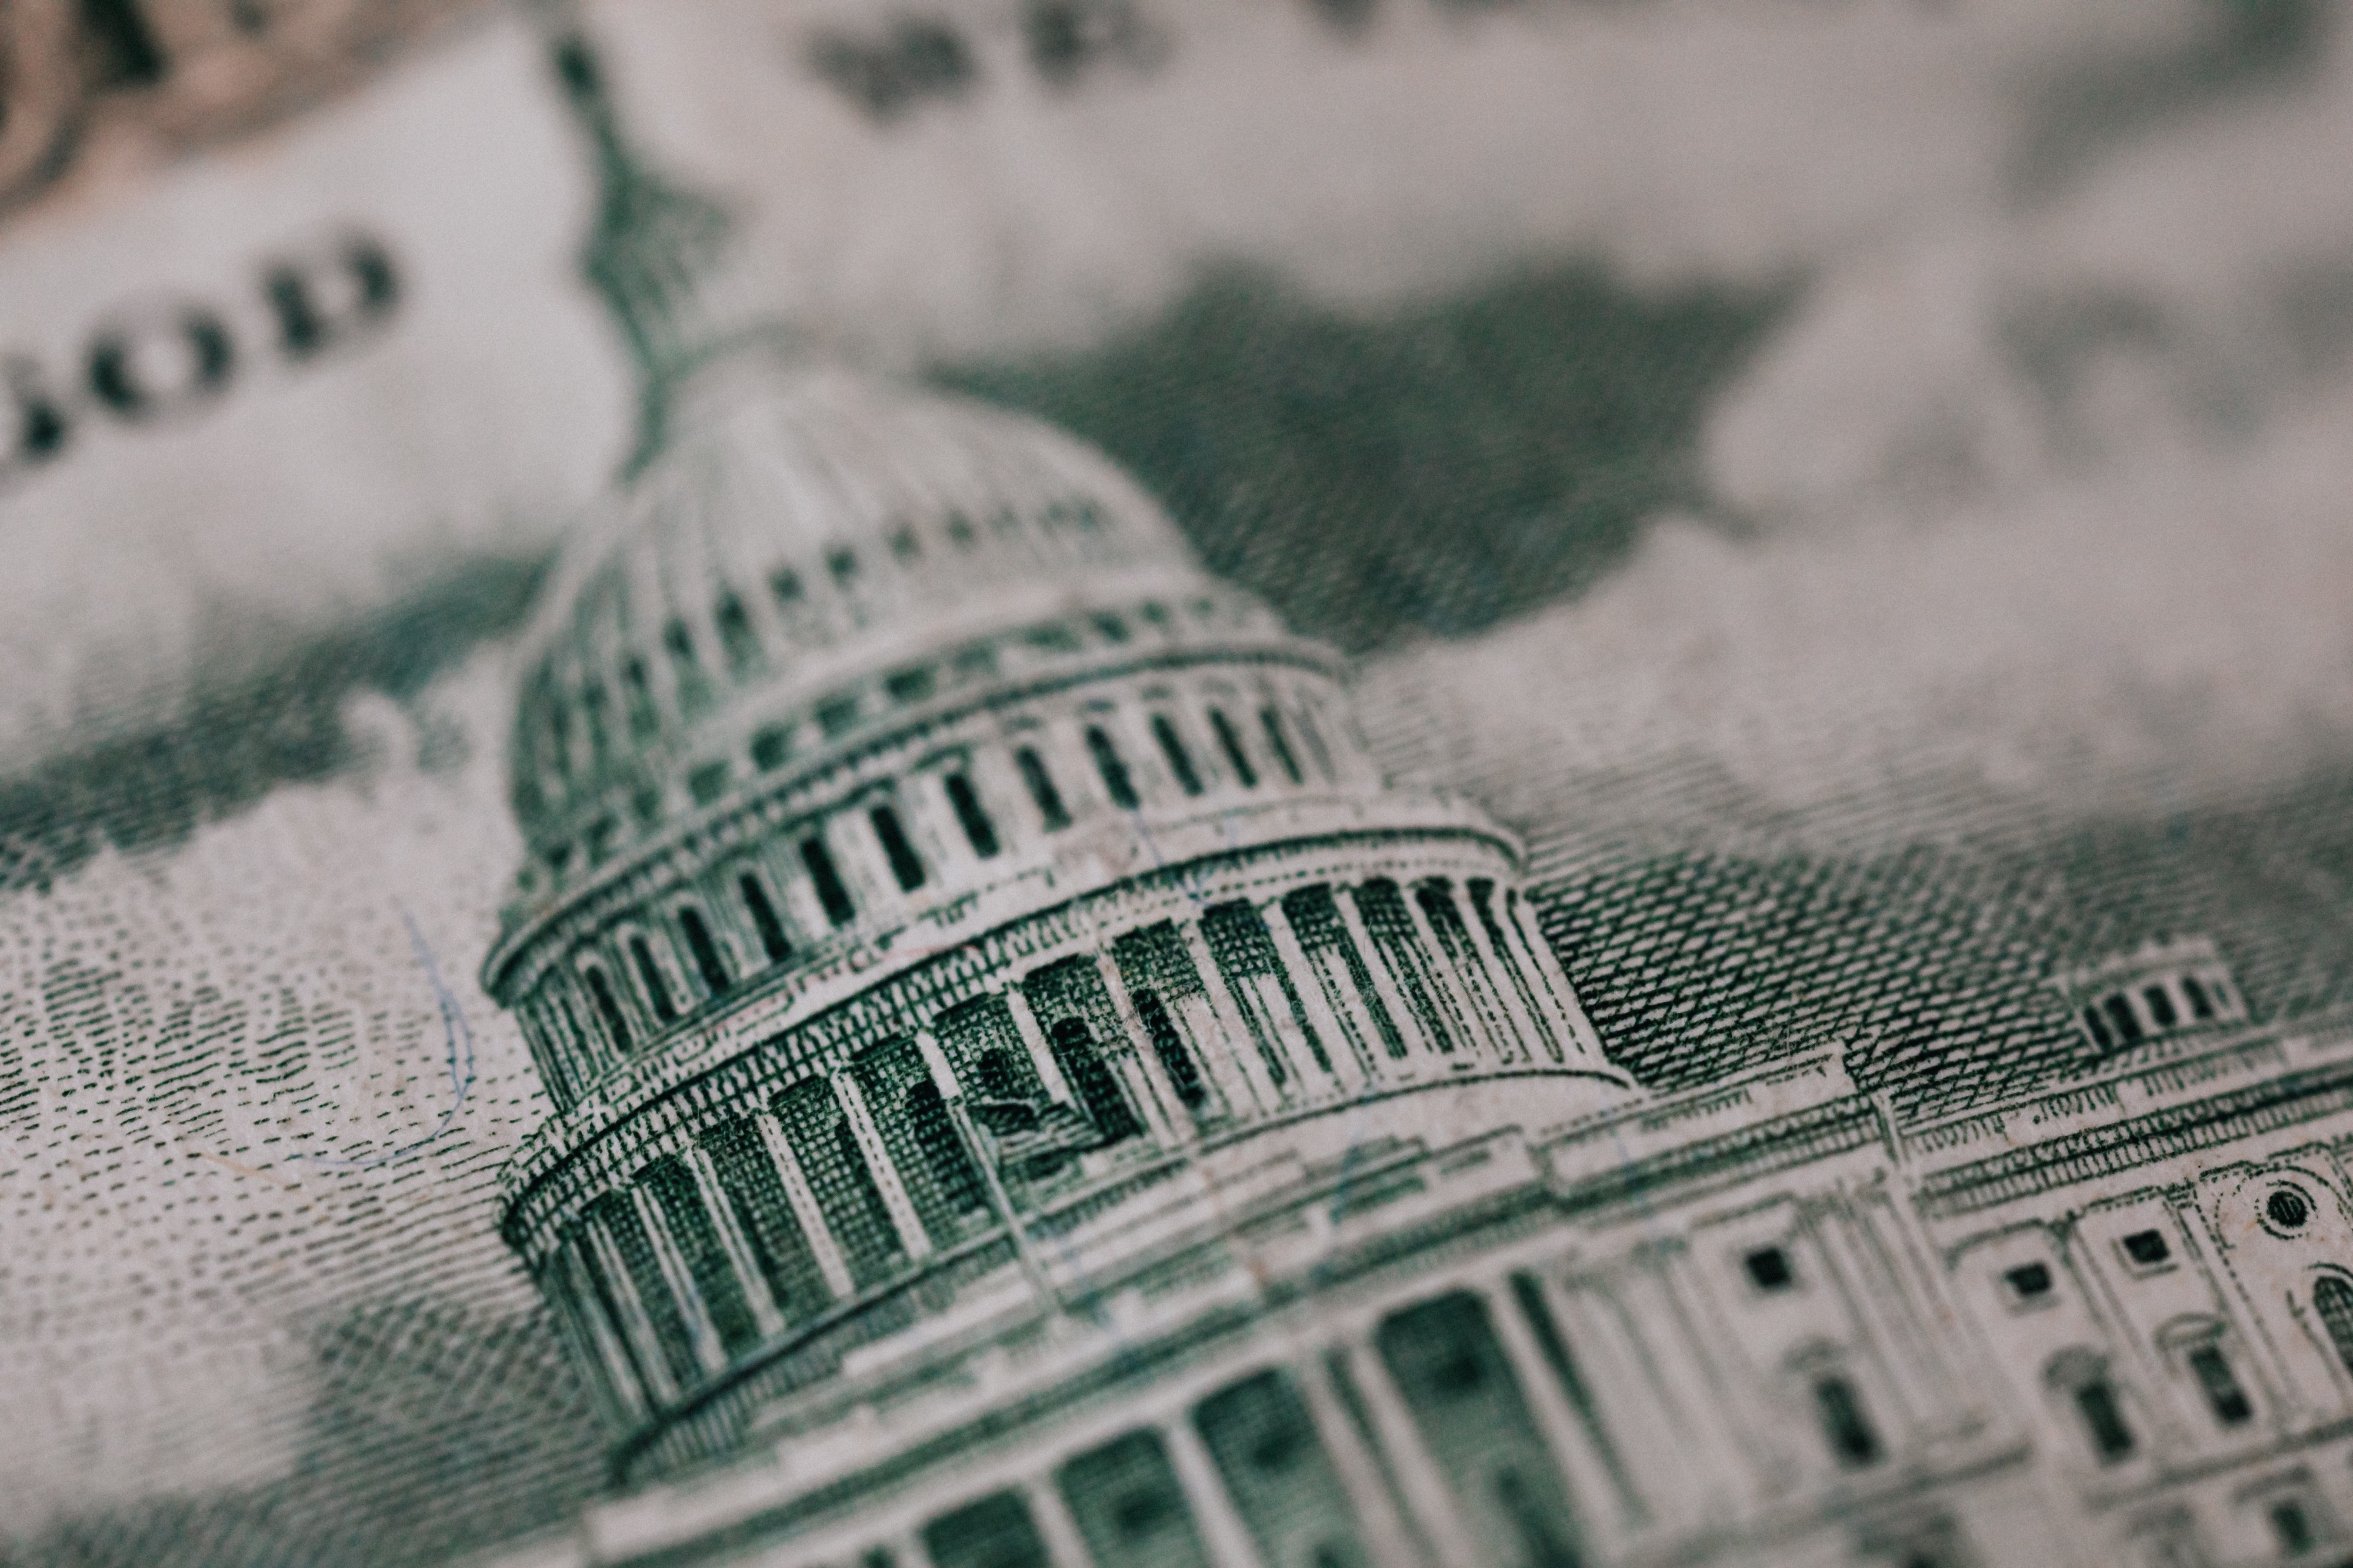 A close up of the capitol building on a dollar bill